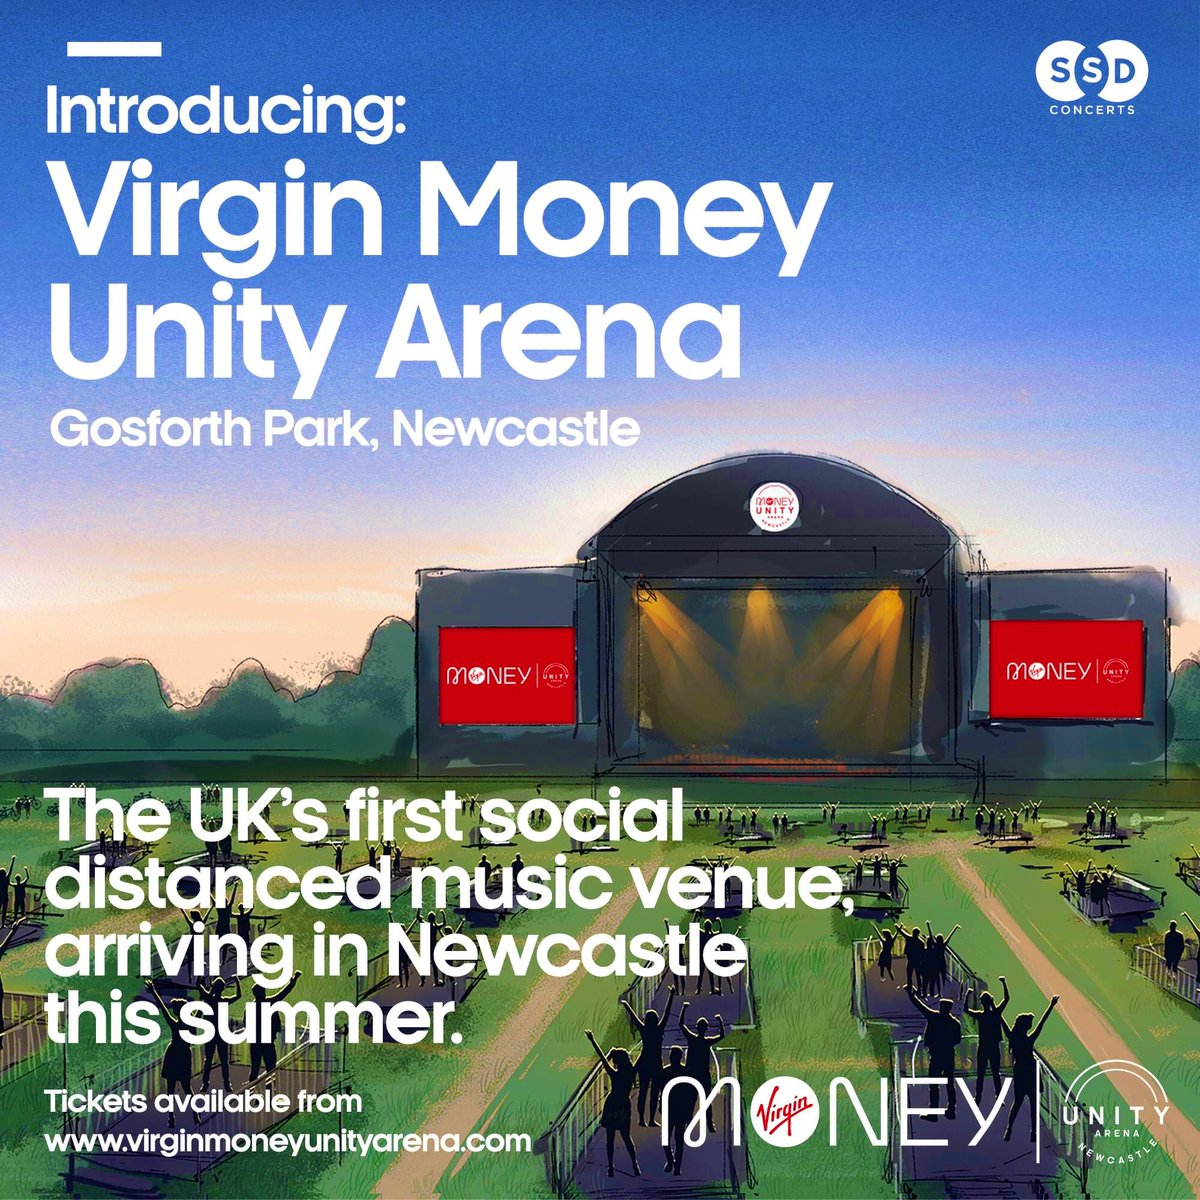 As someone who hates large crowds at the best of times, I really like this idea from @VirginMoney <br>http://pic.twitter.com/pDknKa8dXf